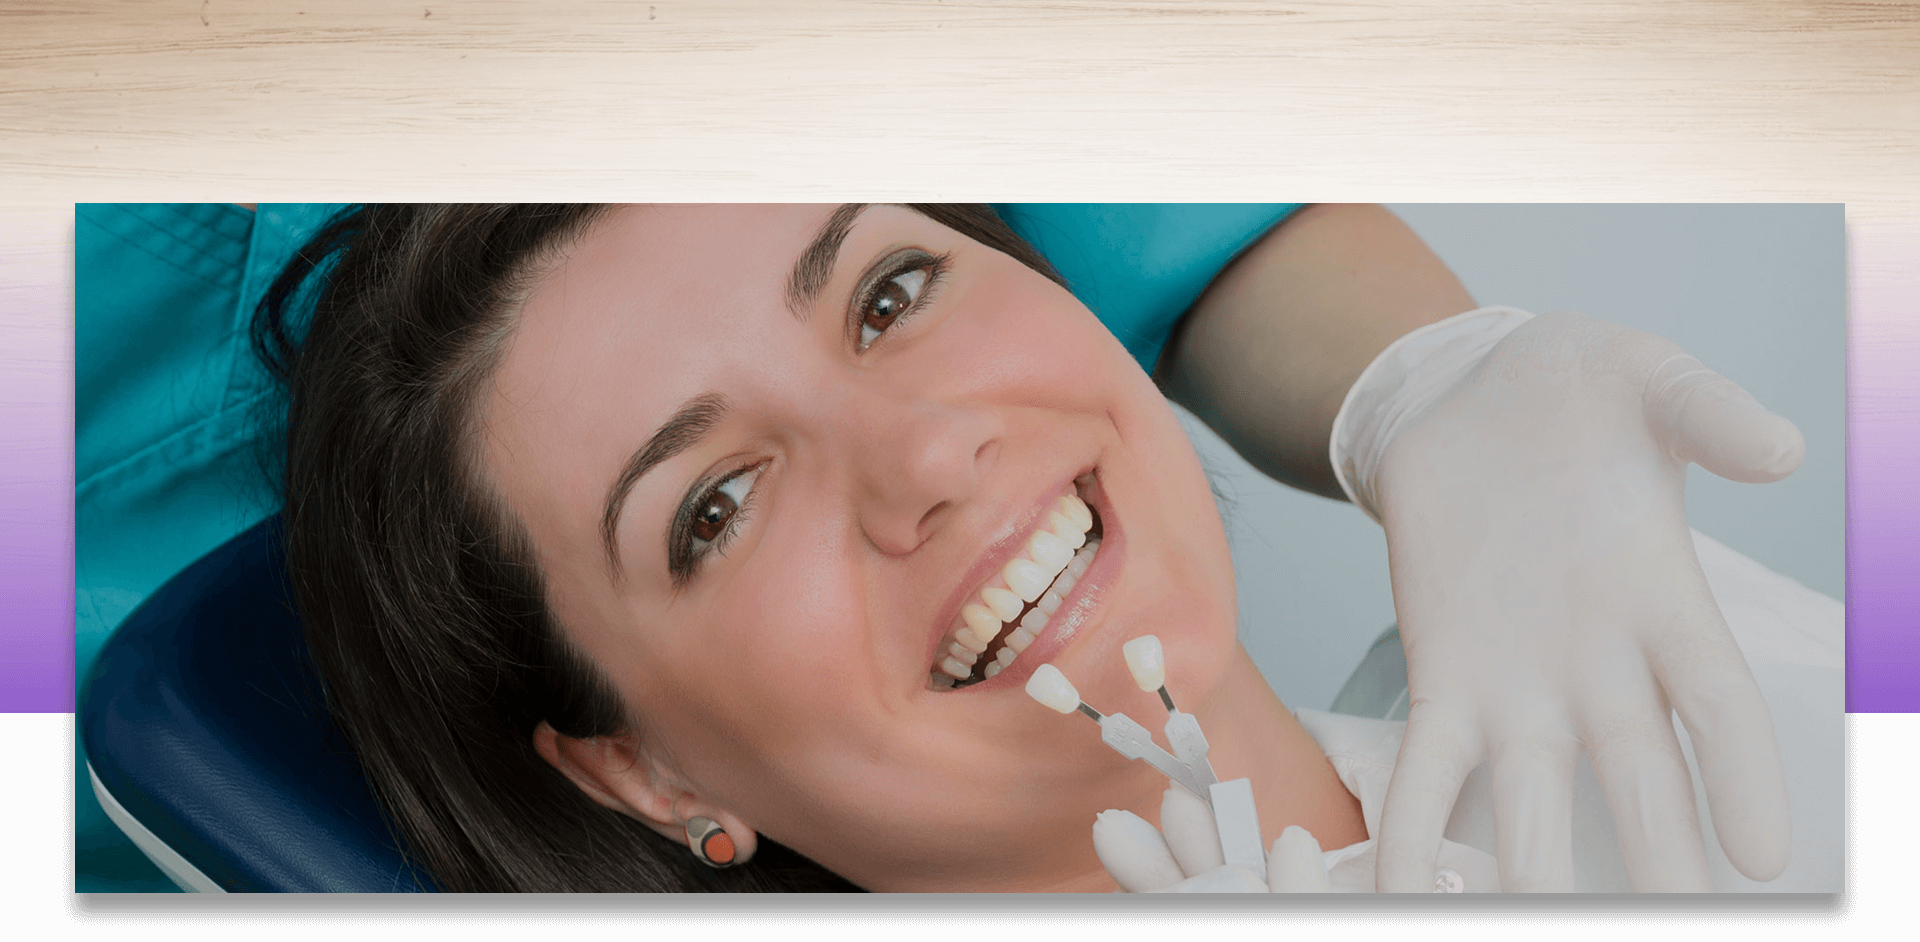 A patient checking Porcelain Teeth